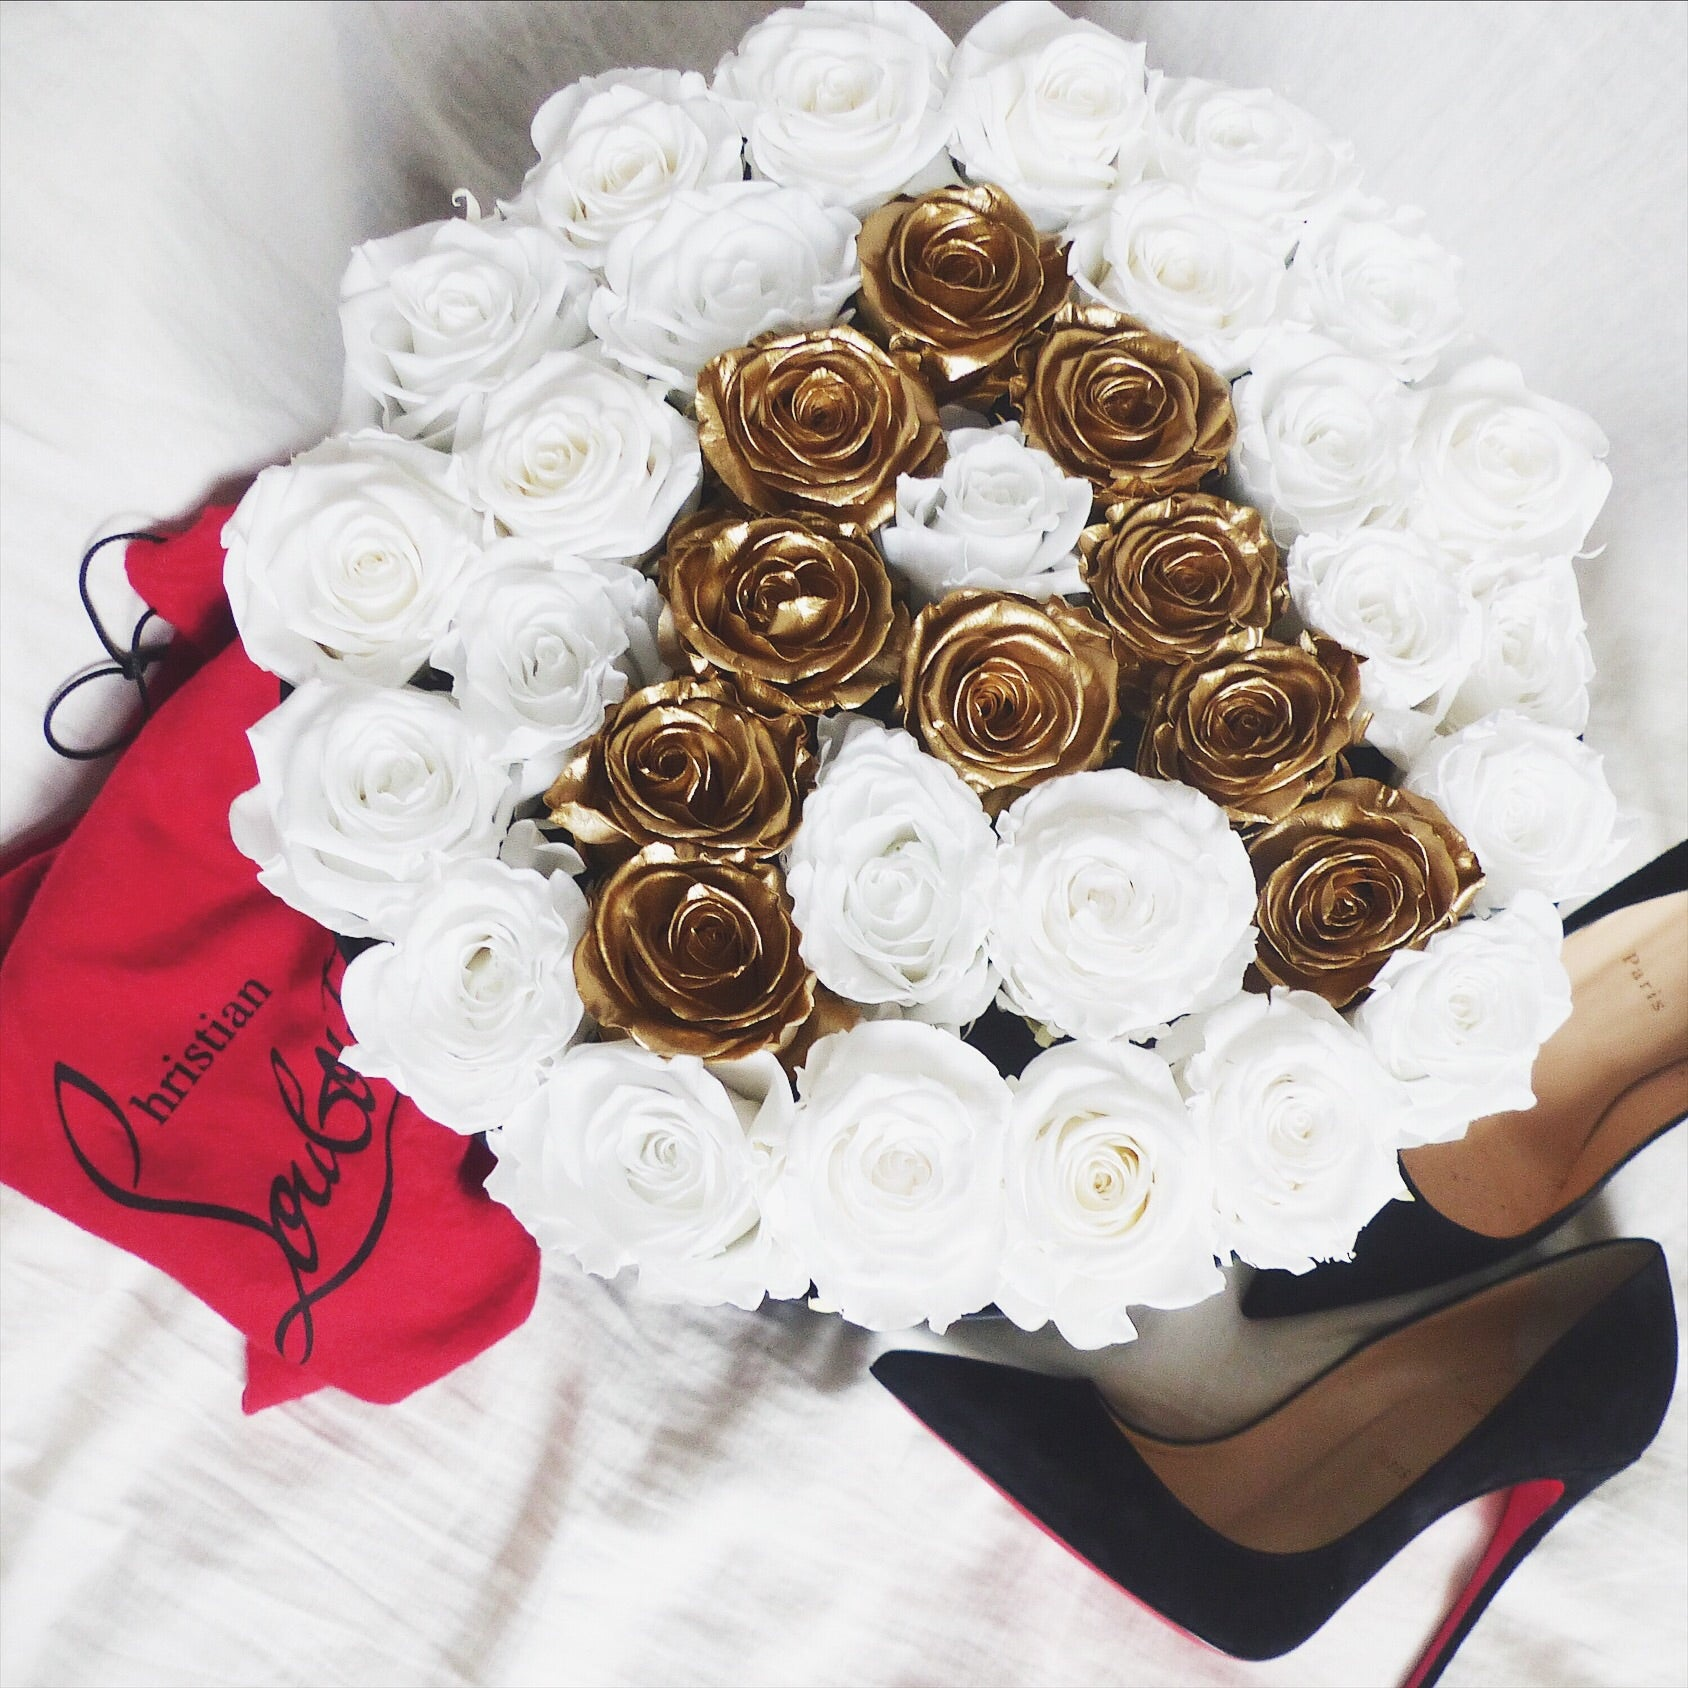 « Le Bouquet » personalized